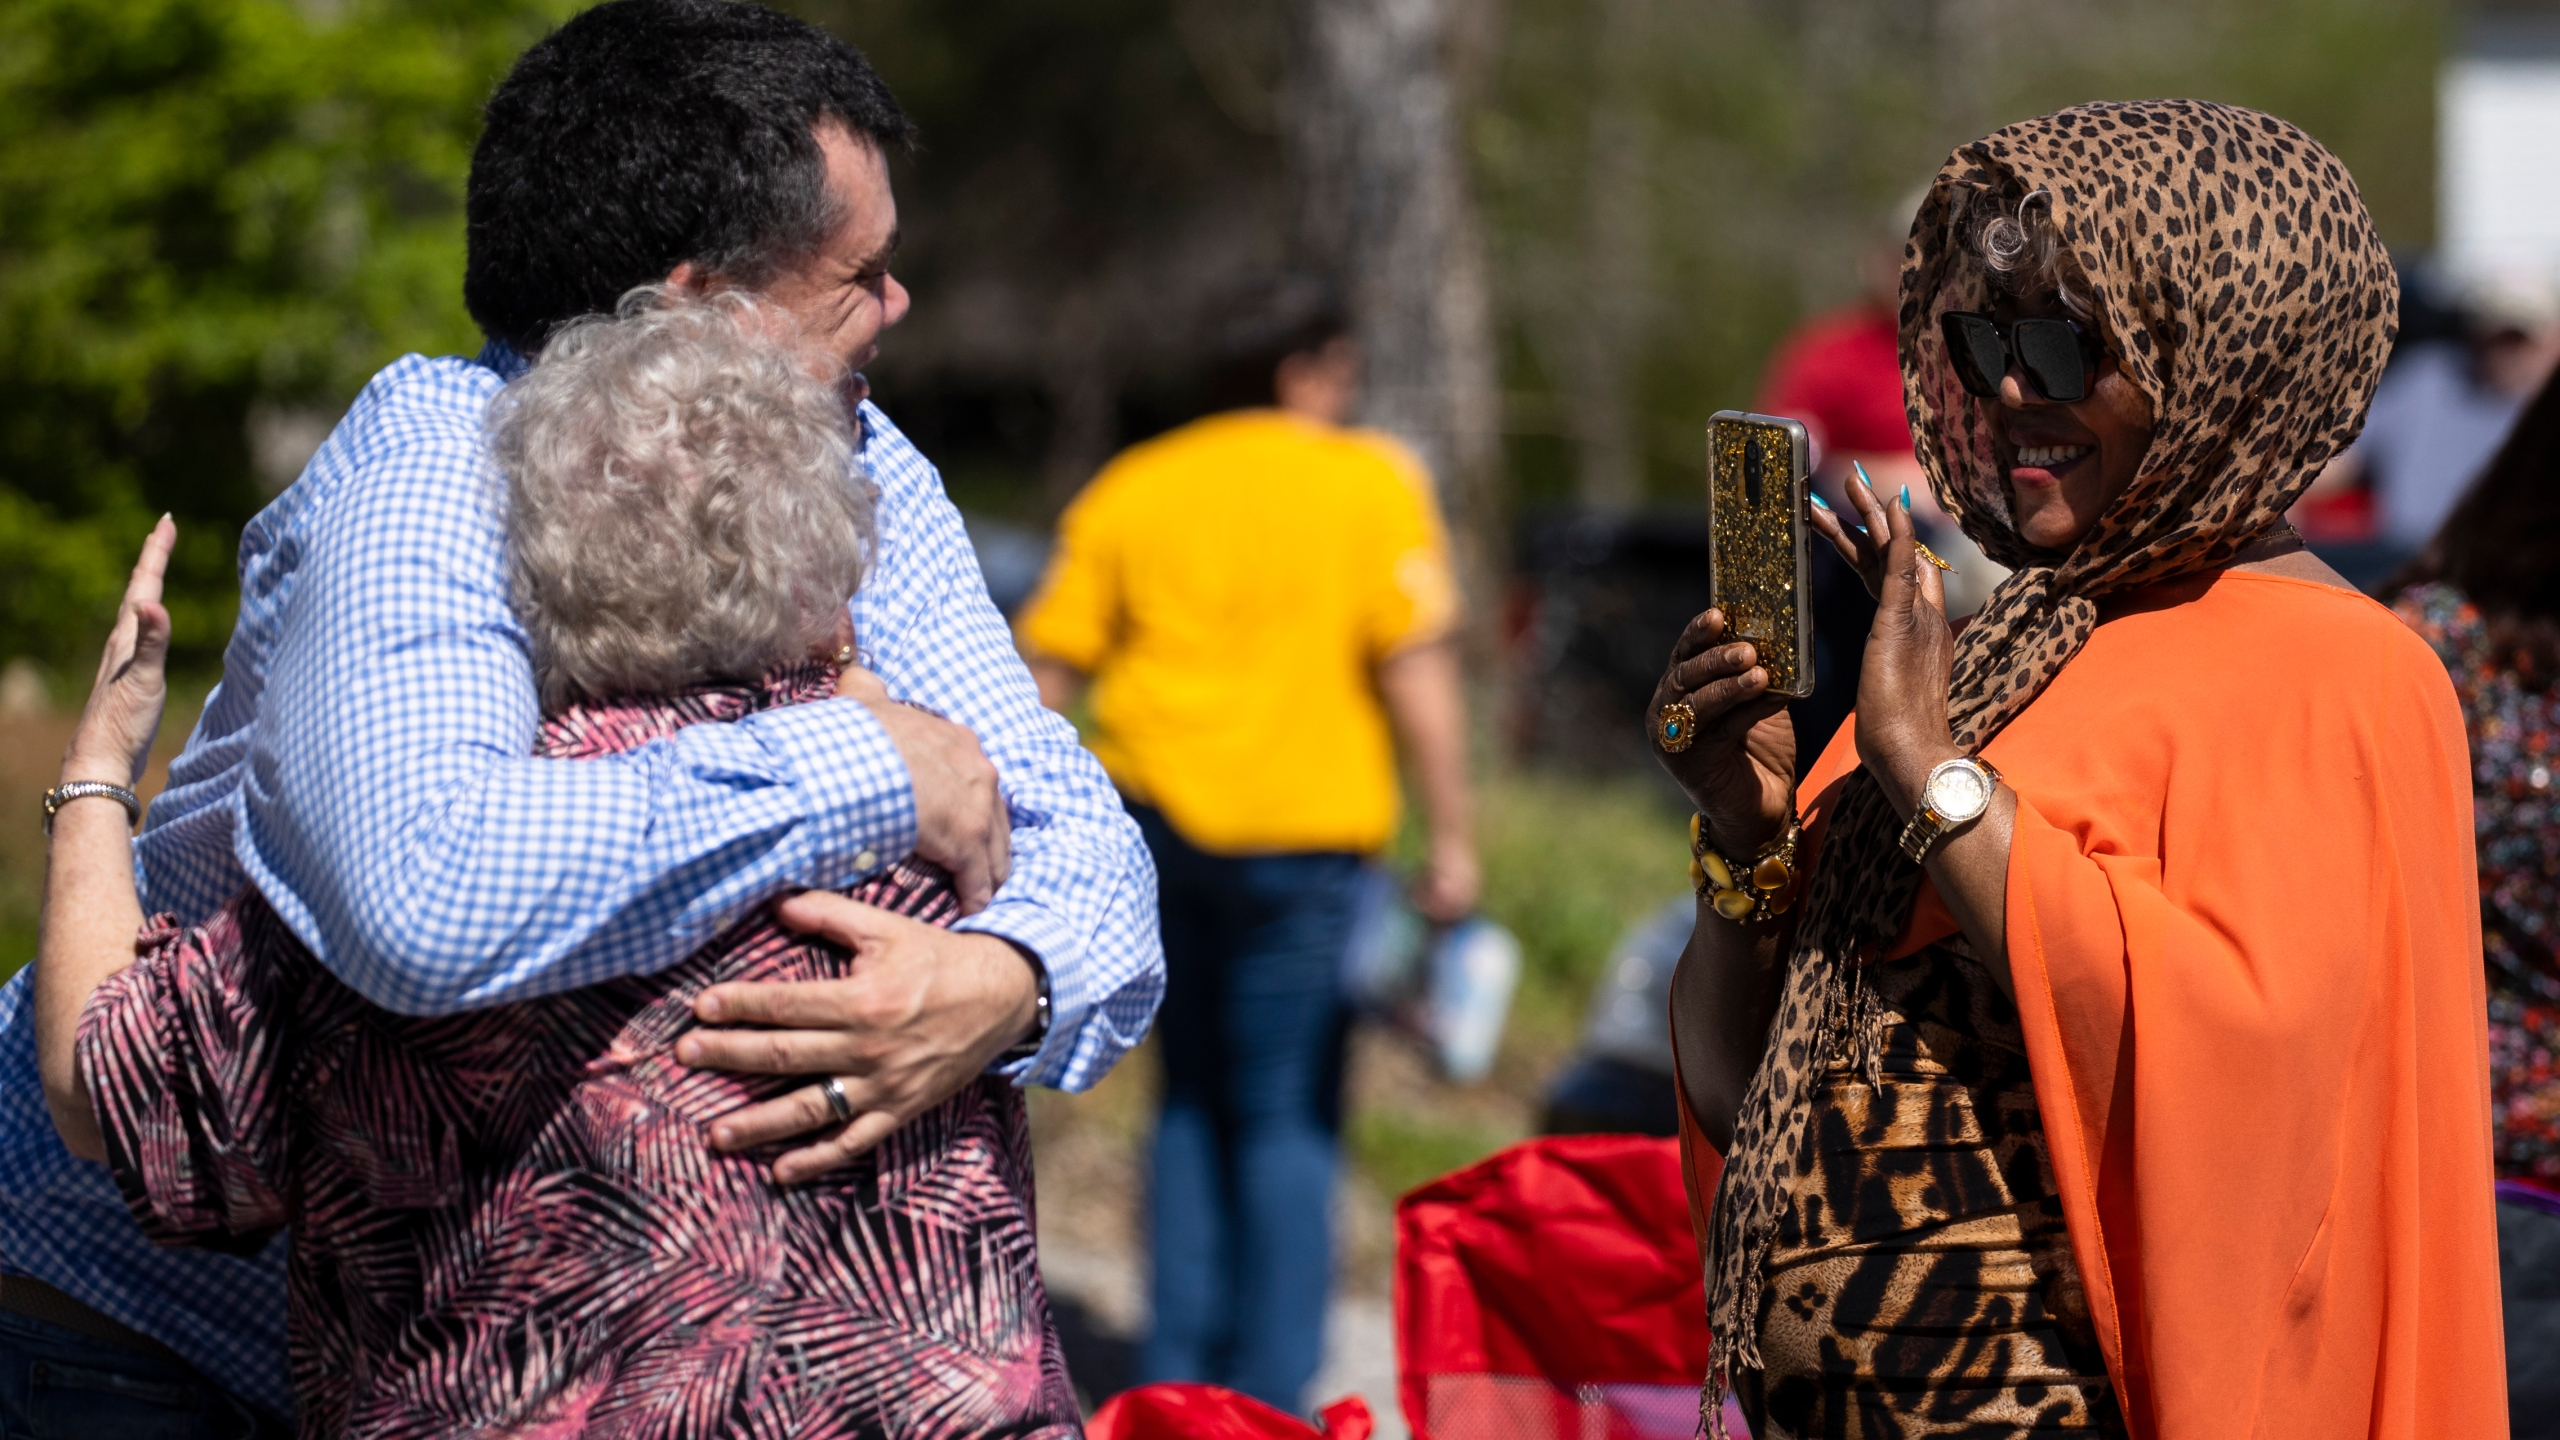 Parishioners hug after Global Vision Bible Church services held in the church parking lot on March 29, 2020, in Mount Juliet, Tenn. Gov. Bill Lee signed an executive order that prohibits social gatherings of 10 or more in response to coronavirus (COVID-19), which is also recommended by the Centers for Disease Control and Prevention. (Brett Carlsen/Getty Images)